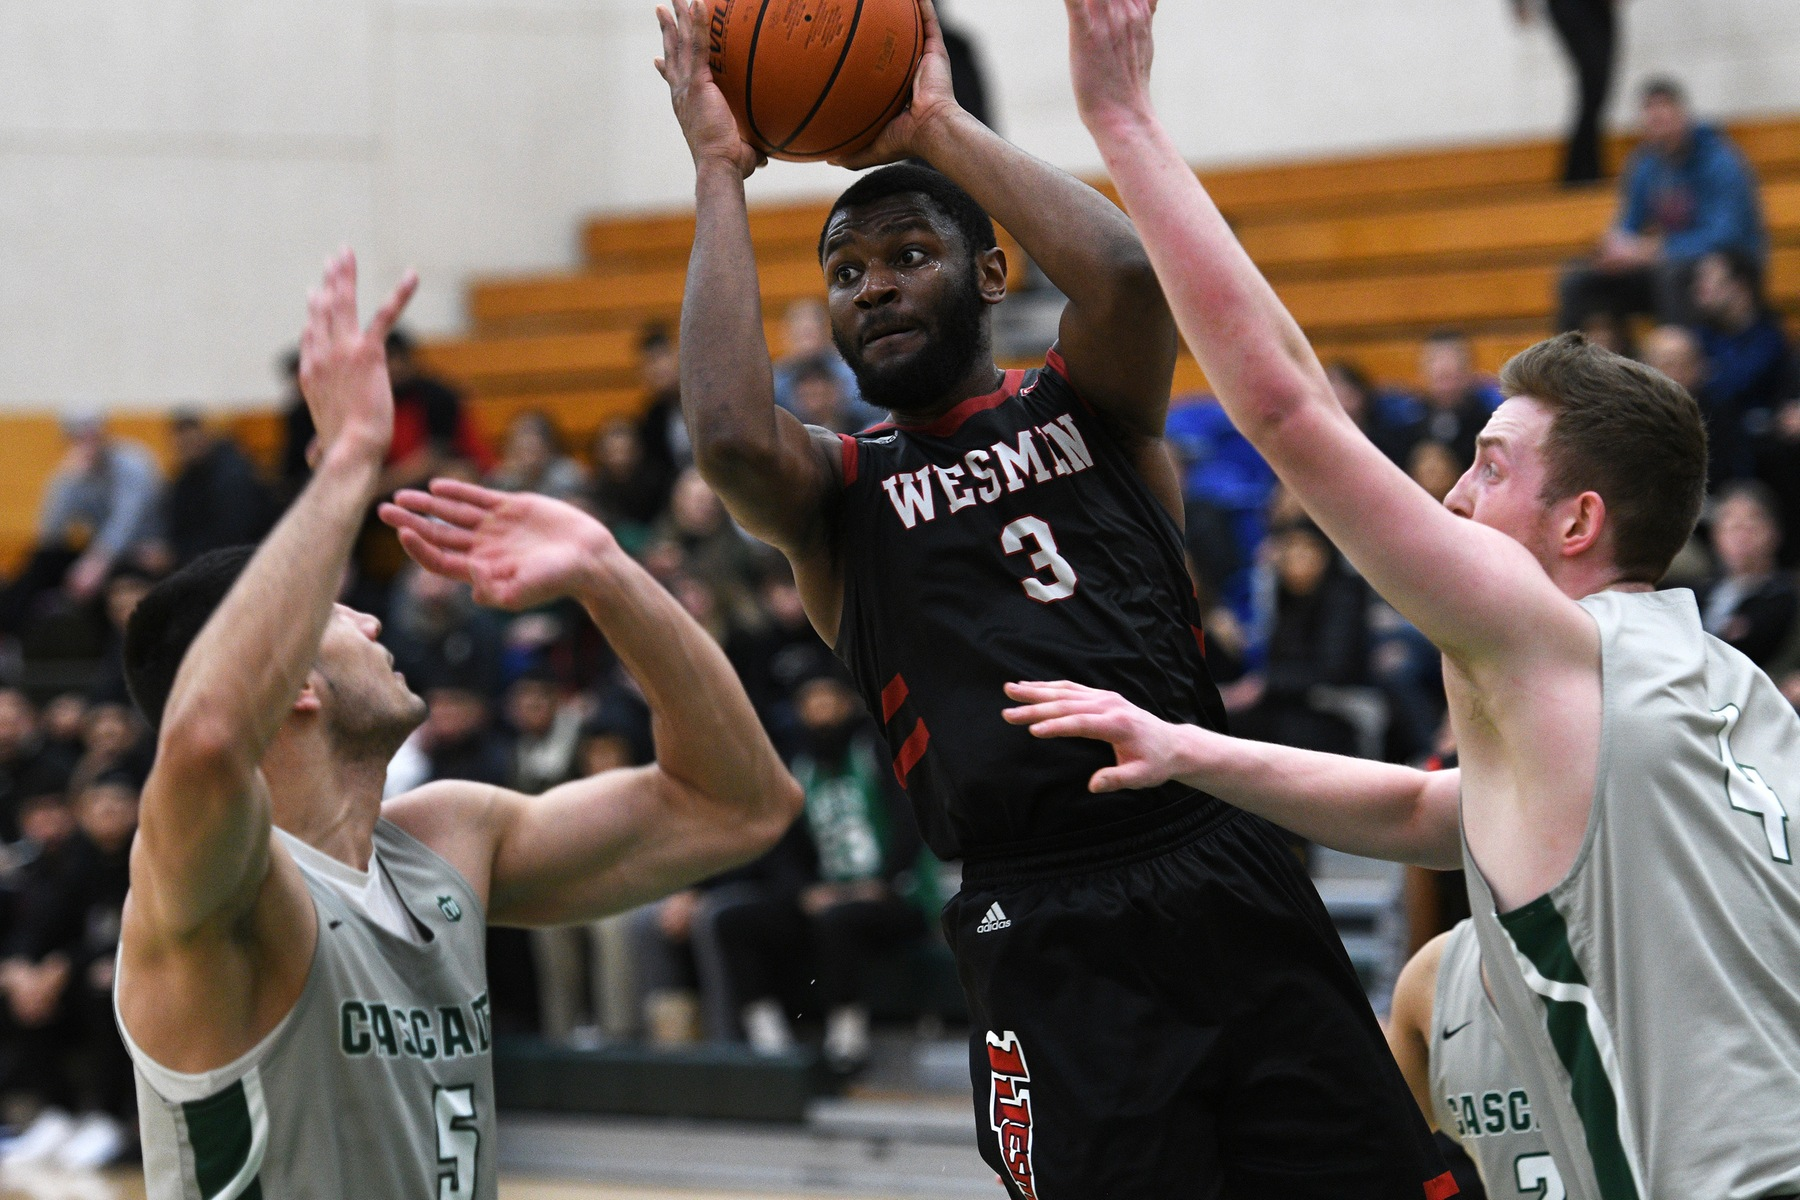 Narcisse Ambanza looks for teammates during a Canada West conference playoff game Friday, Feb. 14, 2020 in Abbotsford, B.C. (Dan Kinvig/UFV photo)